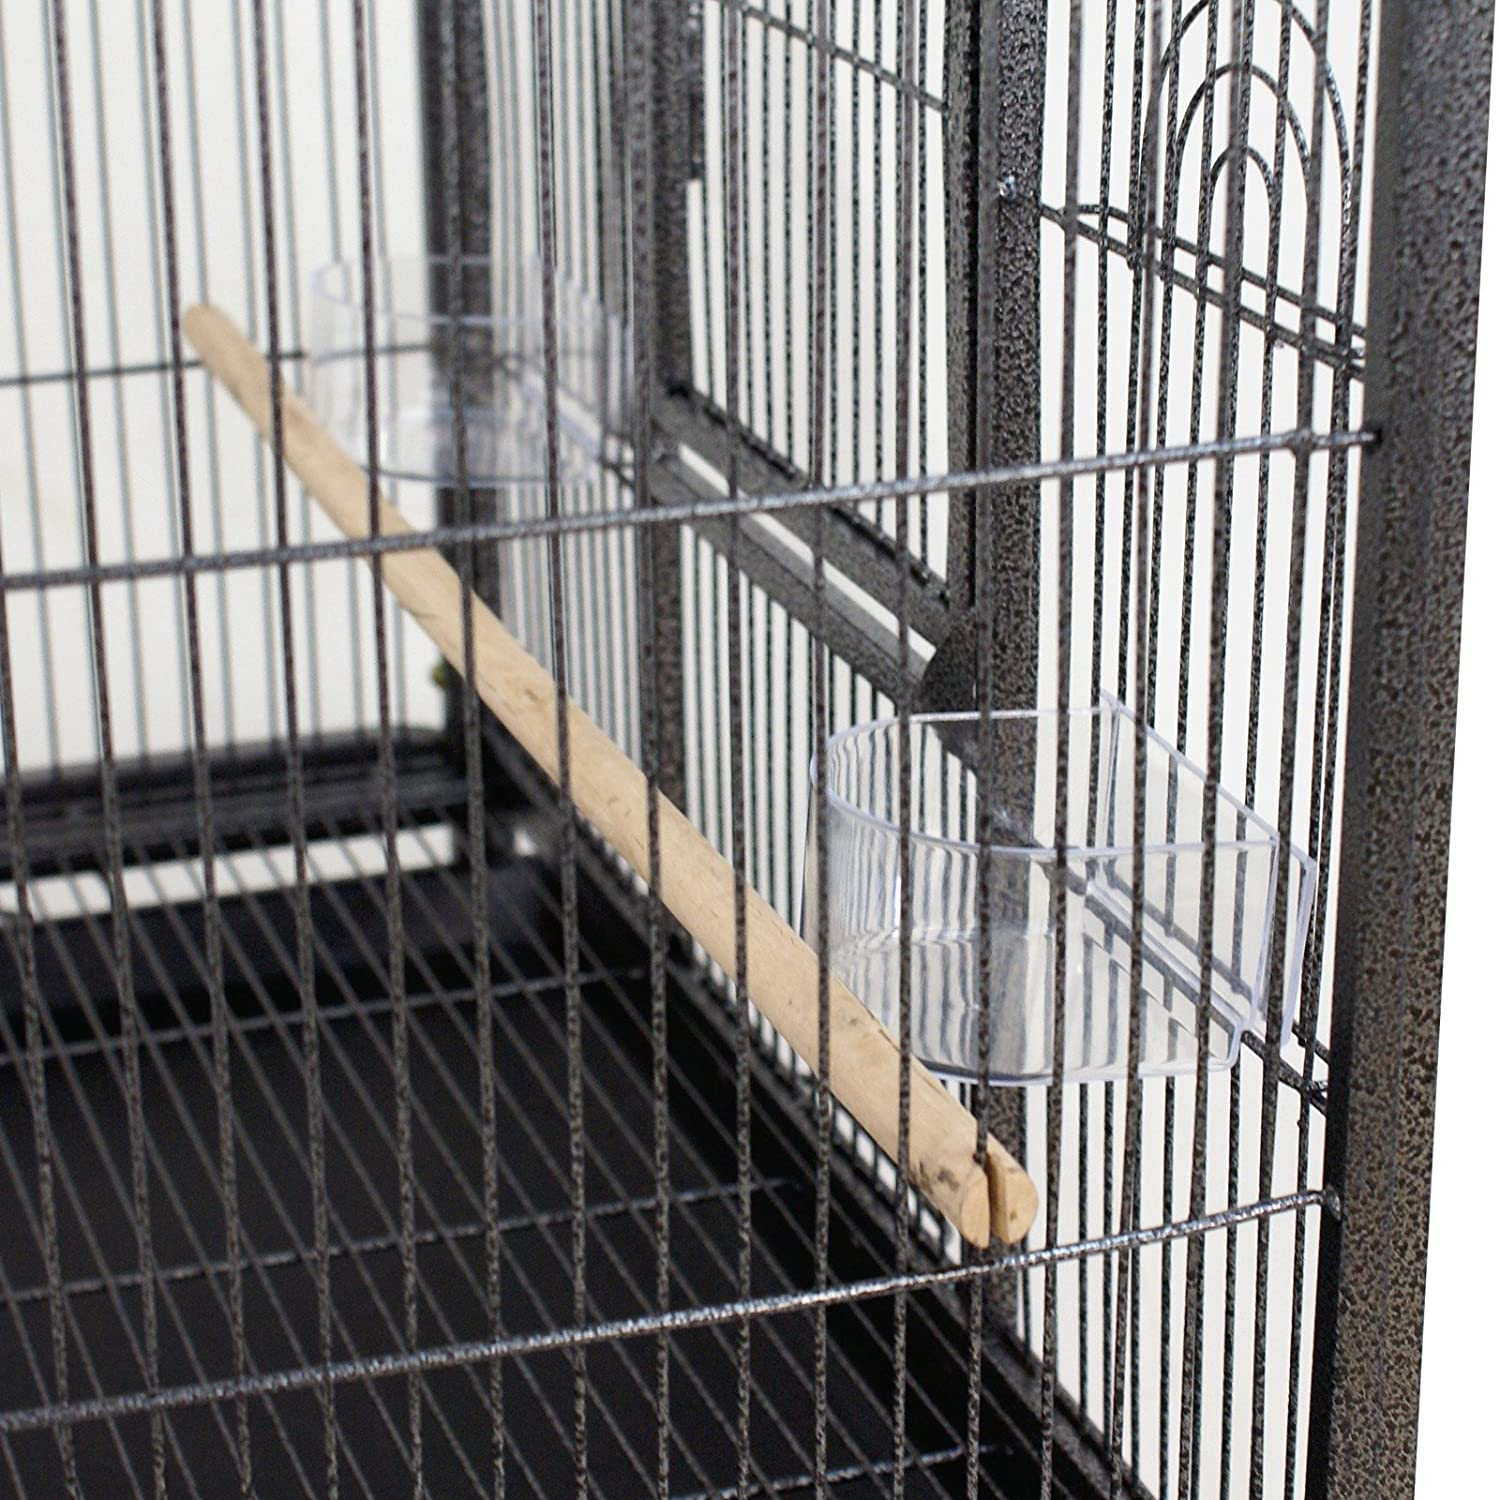 Amazoncom Super Deal 536168 Large Bird Cage Play Top Parrot